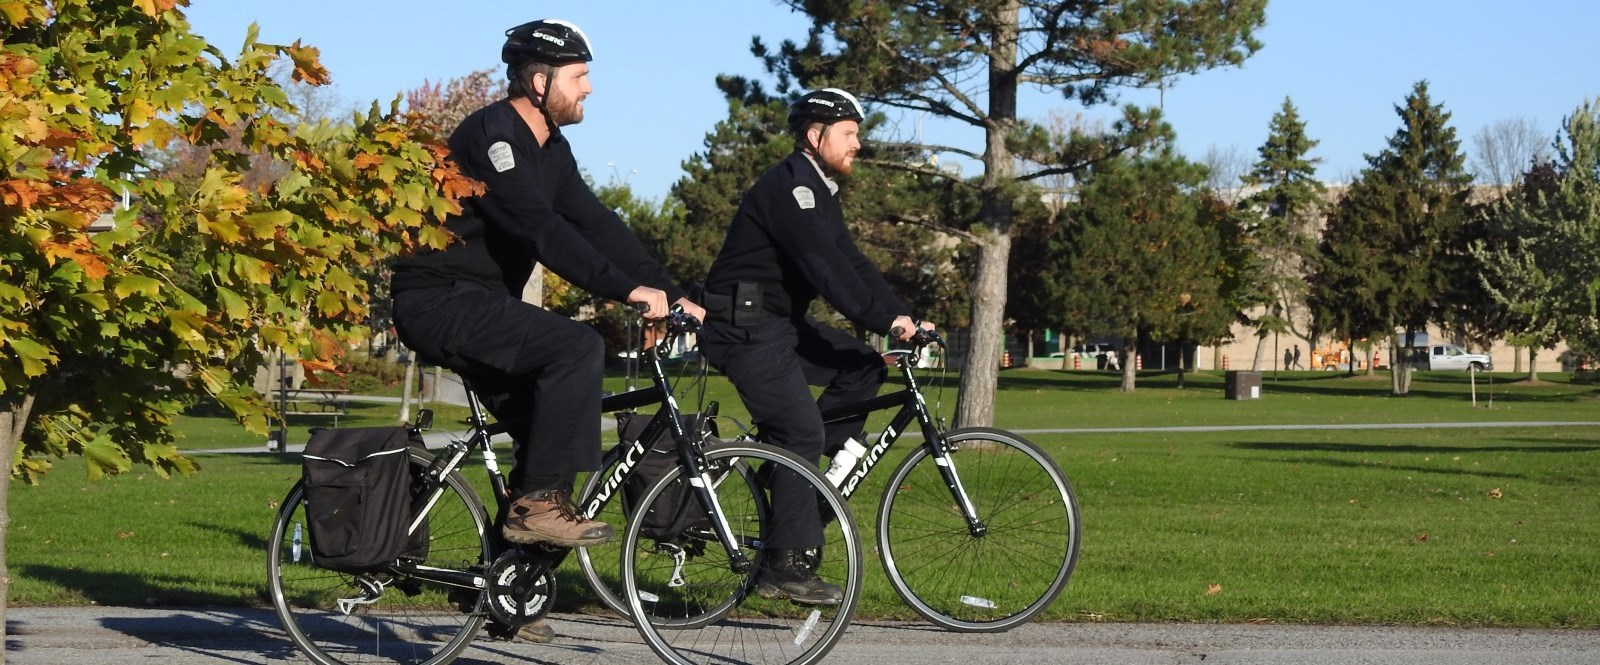 Cornwall by-law inspectors ride bikes in Lamoureux Park